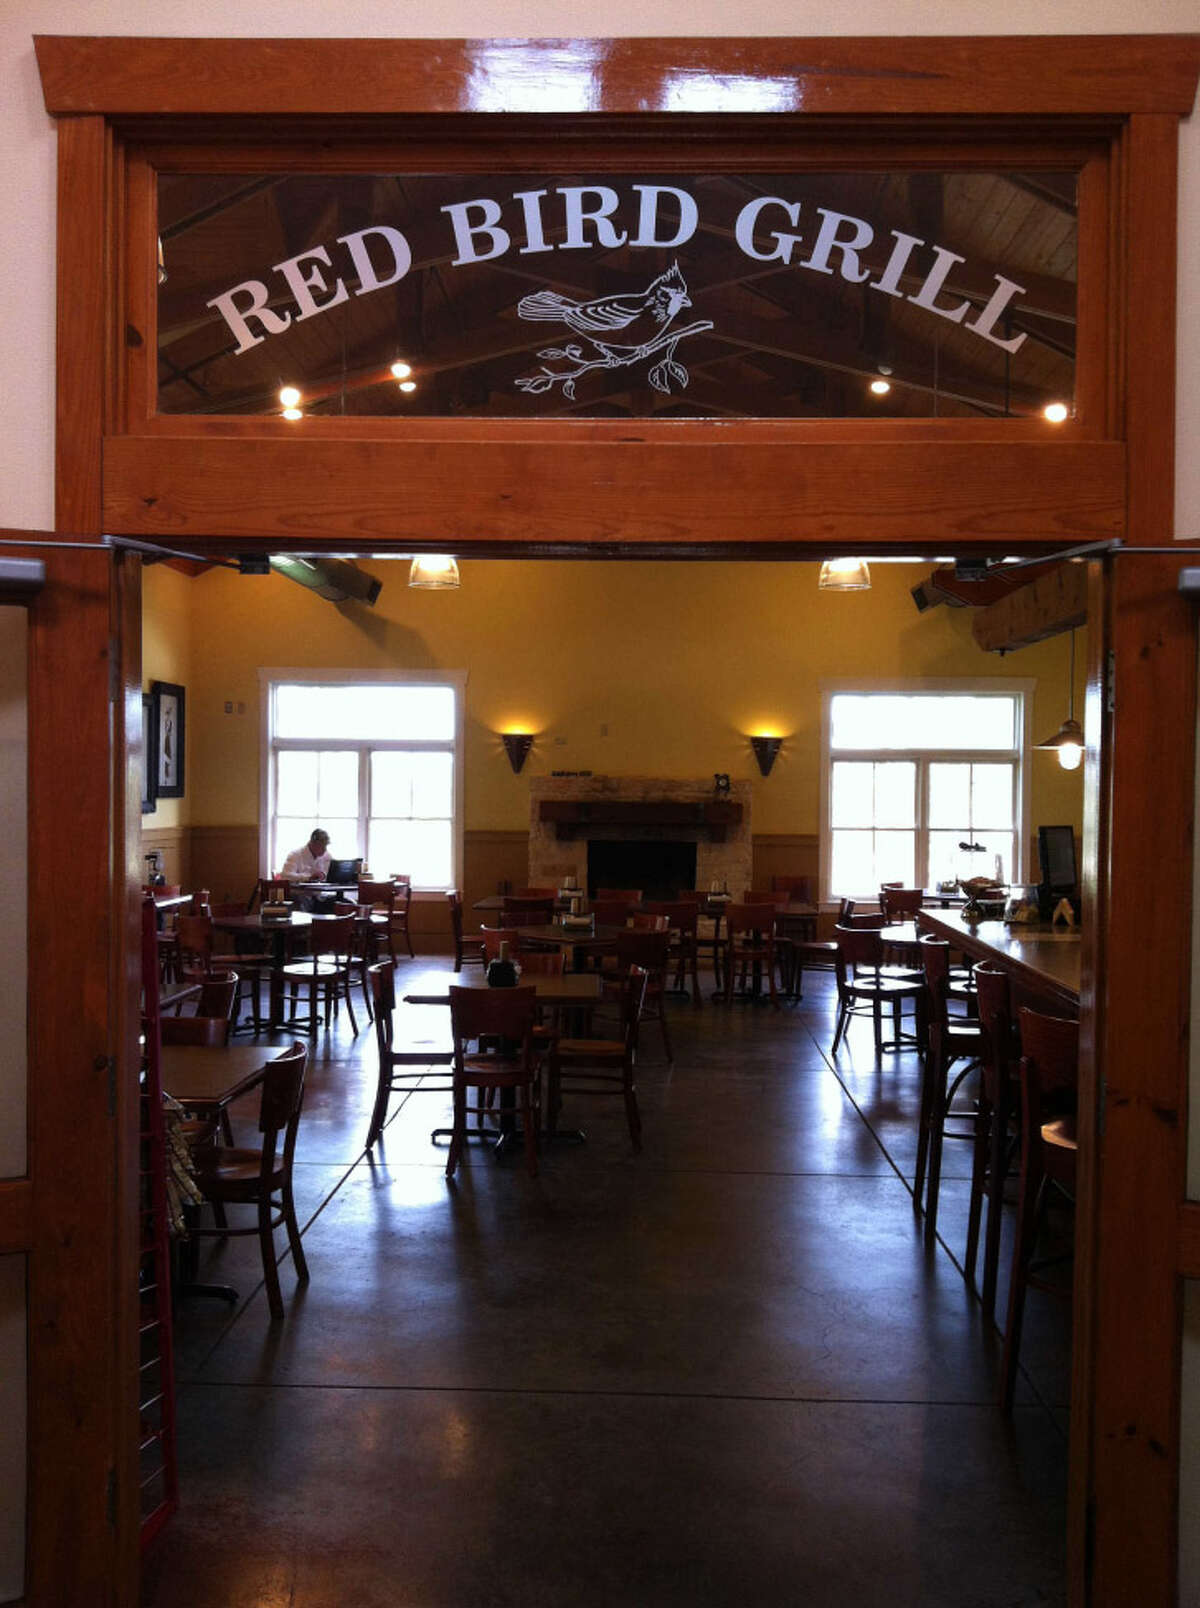 The Red Bird Grill was part of the clubhouse renovations at Lady Bird Johnson Golf Course.